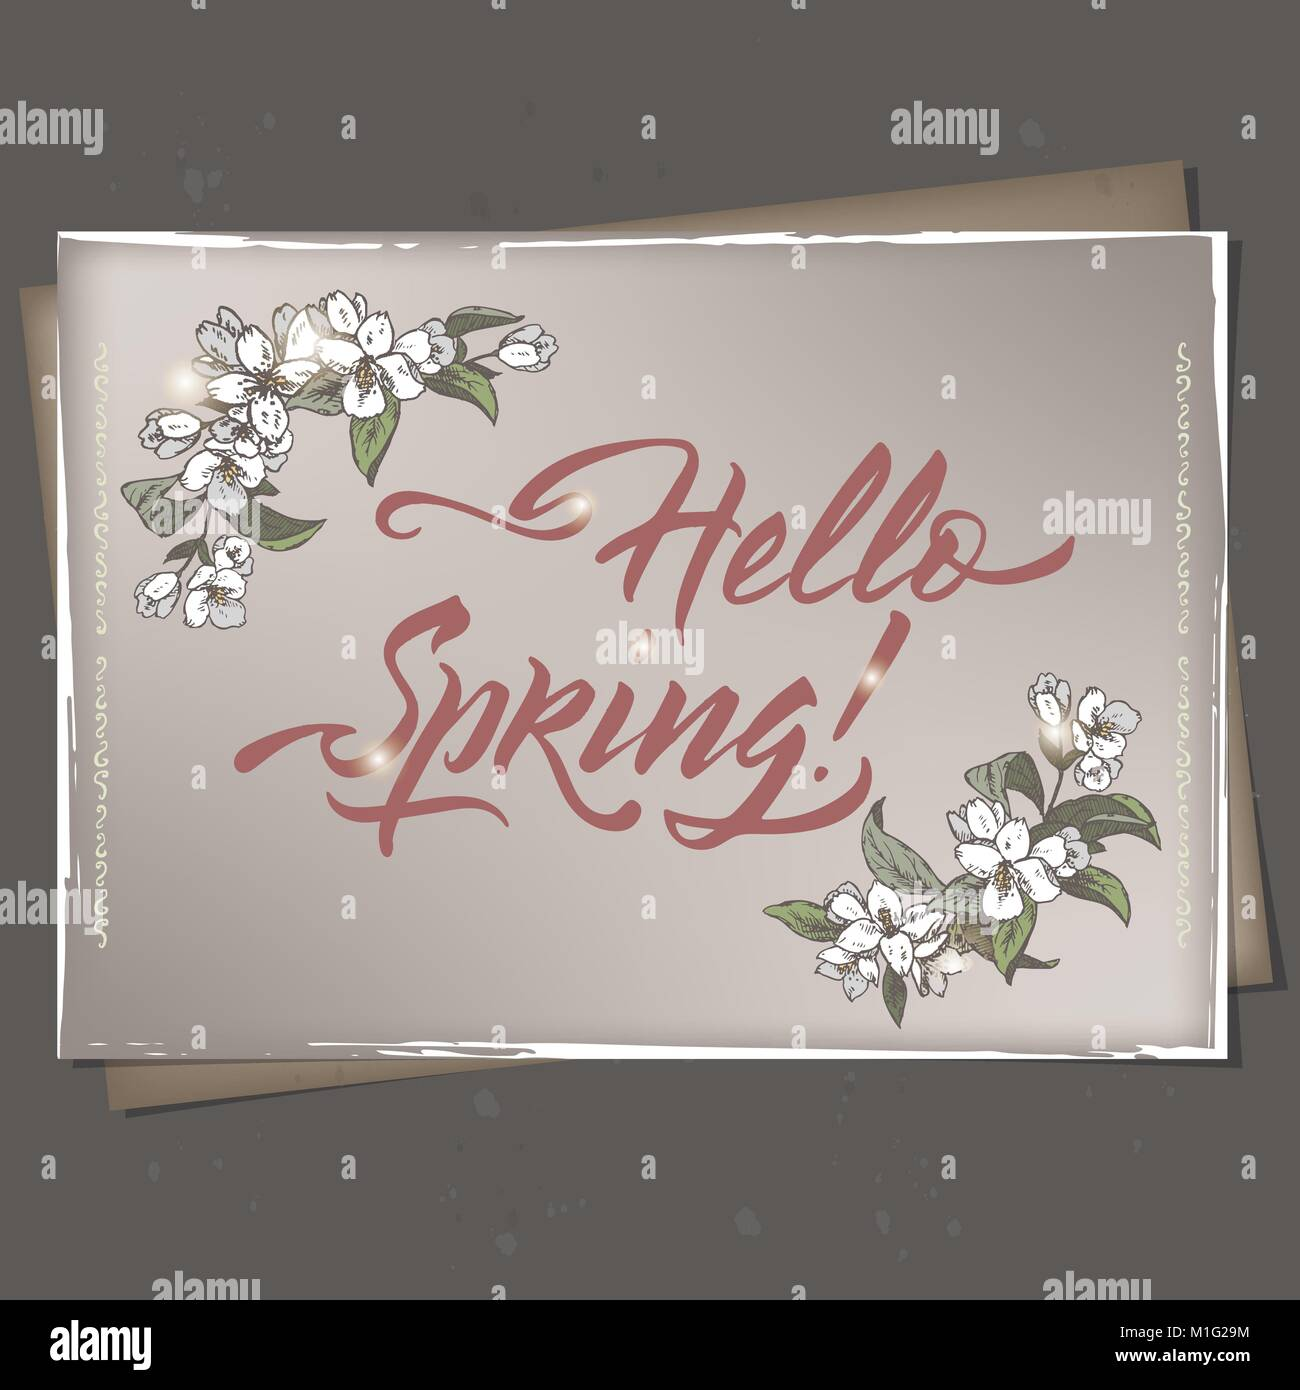 Color A4 Format Romantic Vintage Greeting Card Template With Spring Related  Brush Calligraphy And Jasmine Flower  Greeting Card Format